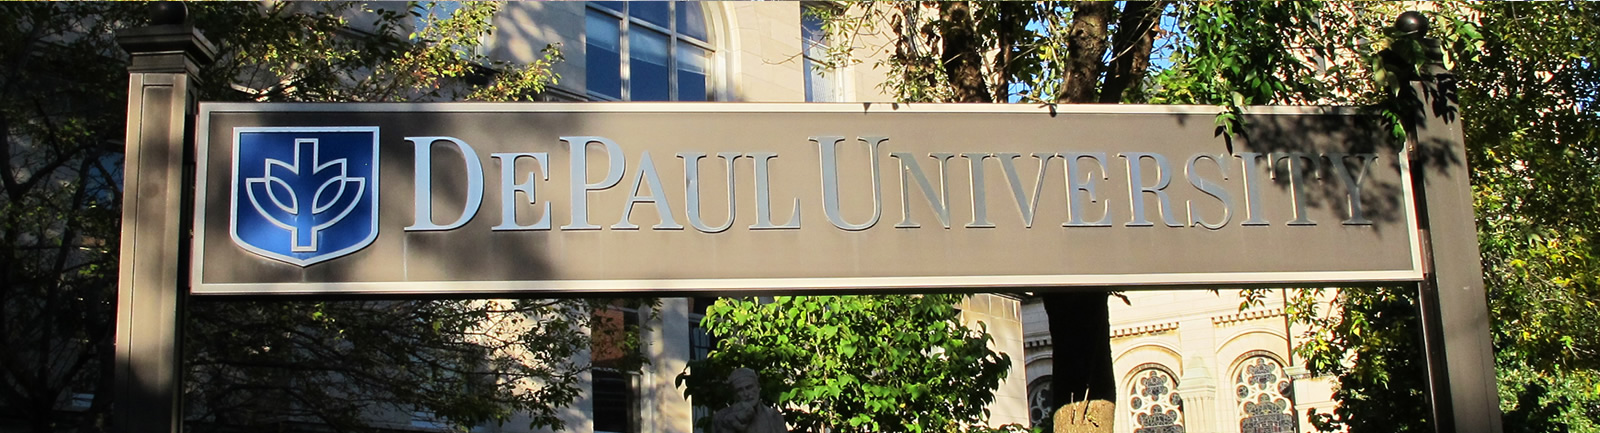 DePaul University sign outsid eof the Lincoln Park Campus